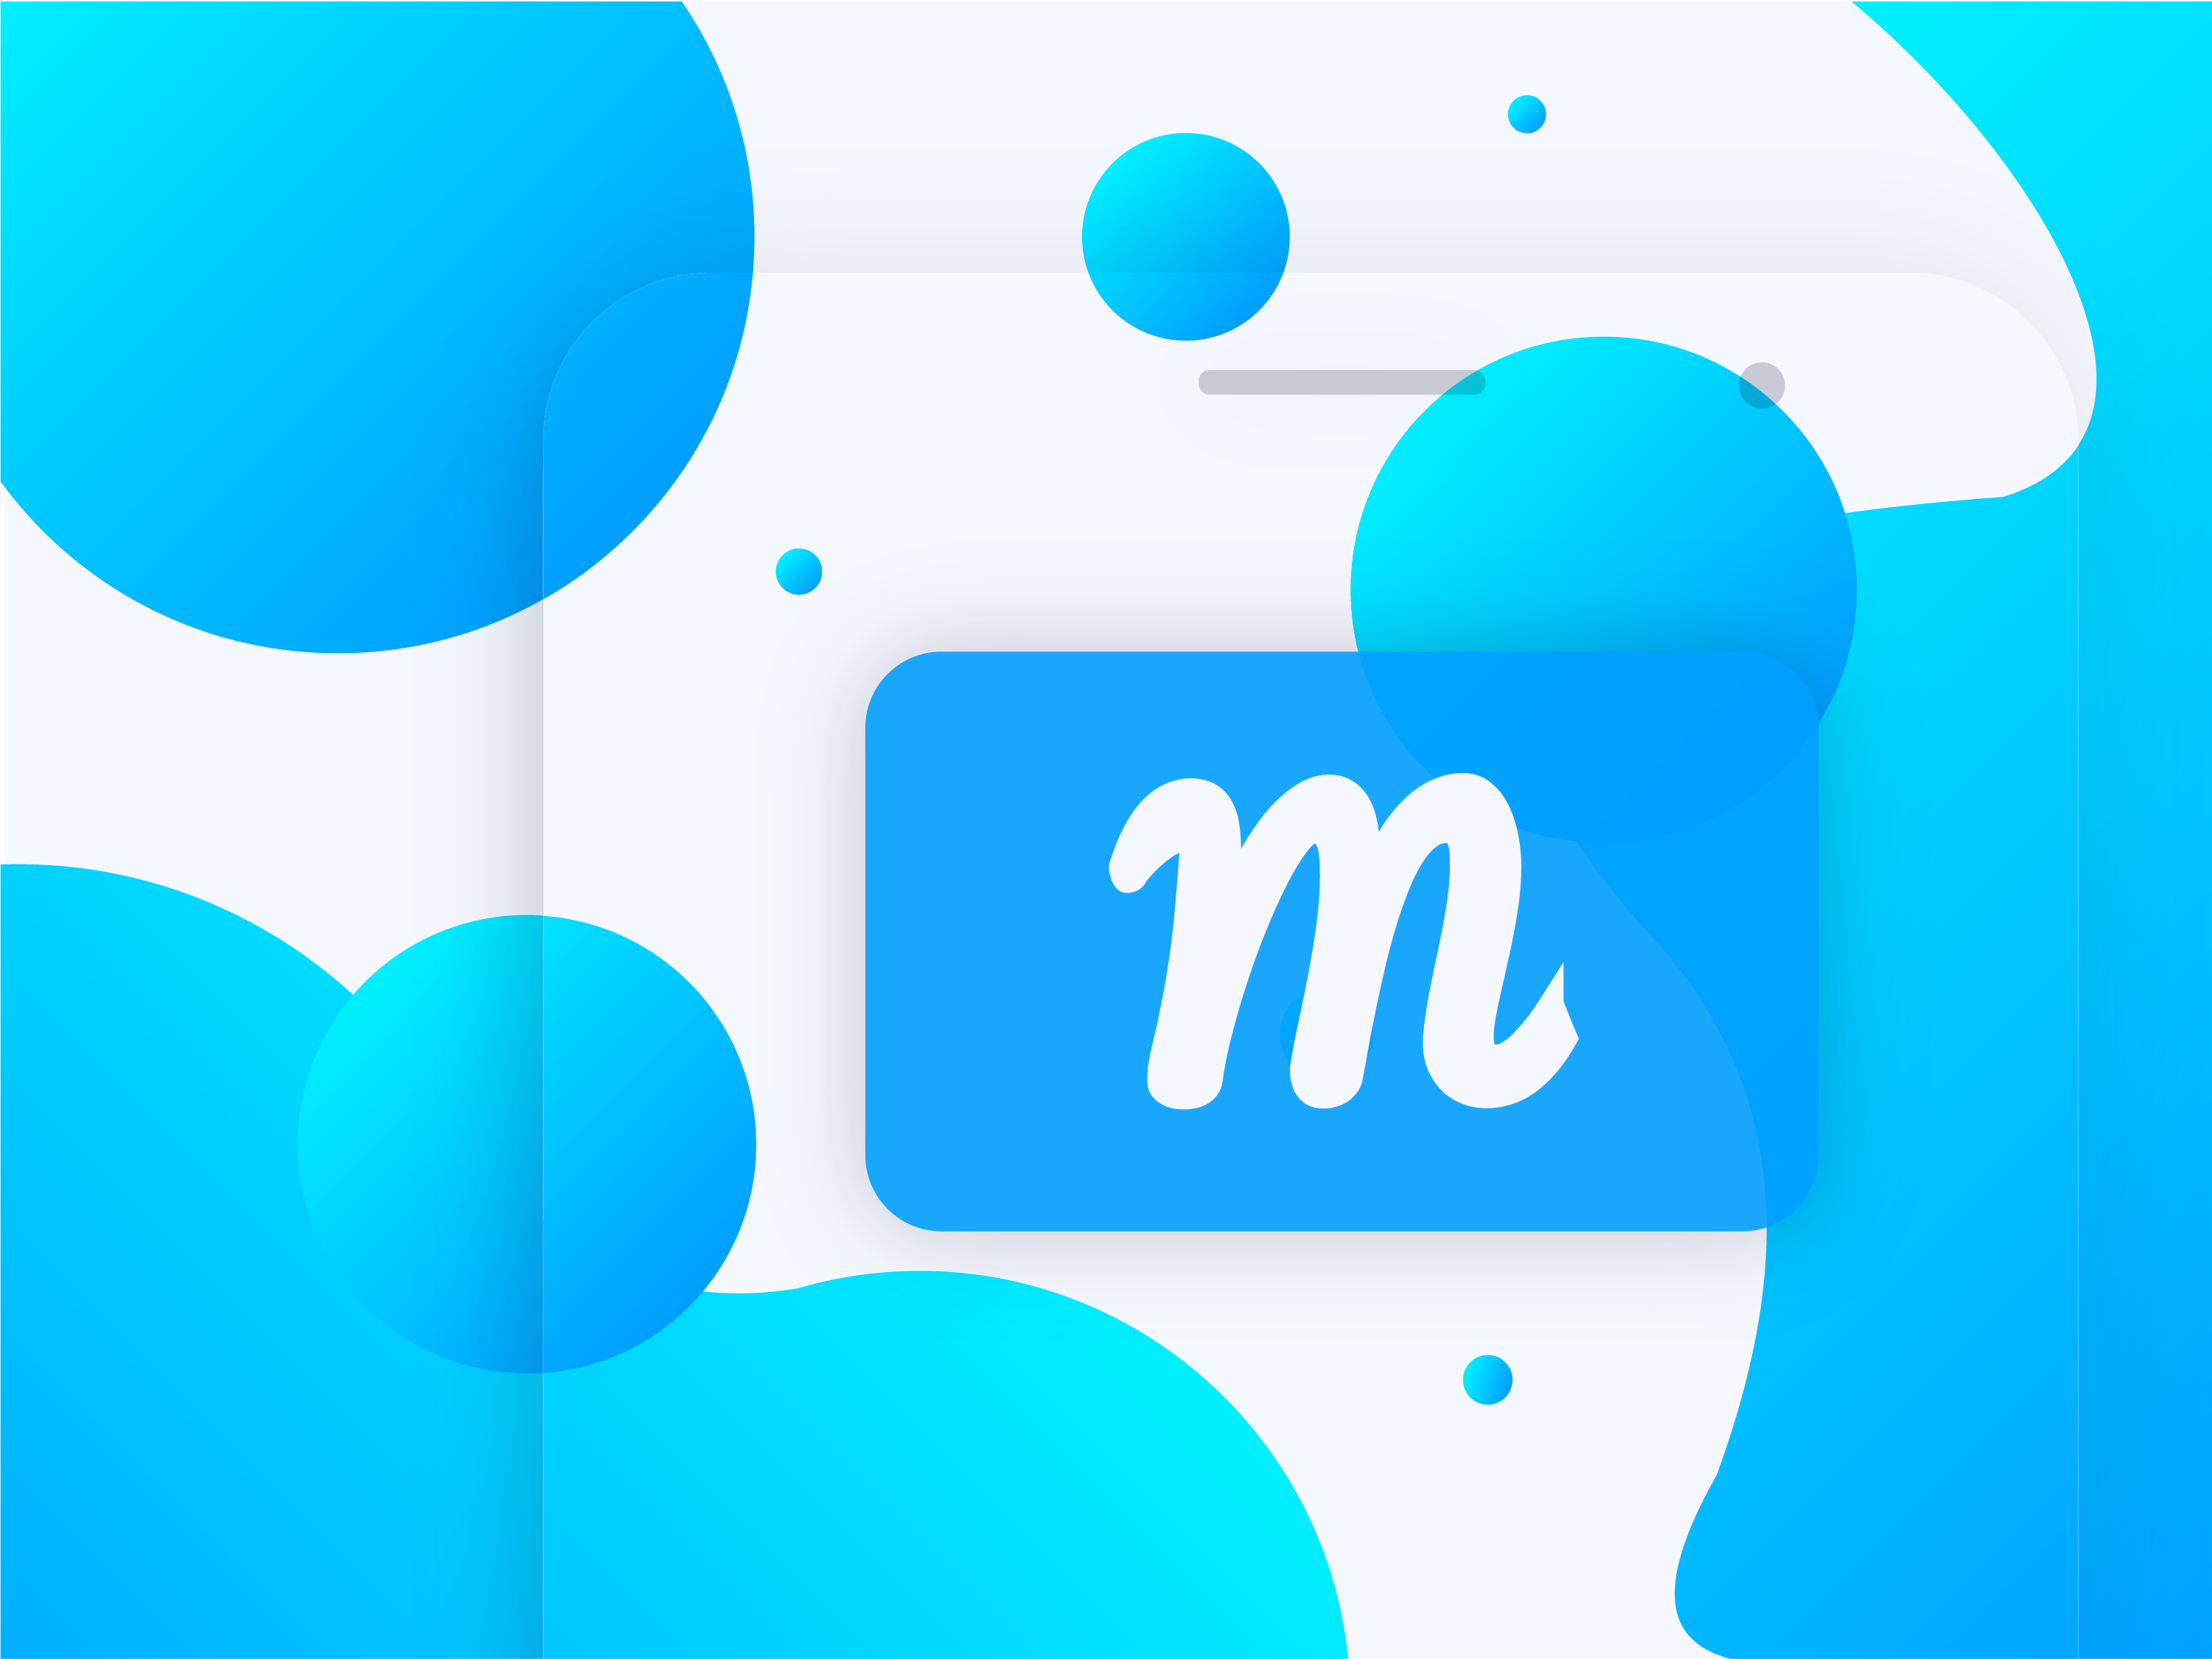 Ui Ux Guidelines For Meetu One Of The Most Important Ui Ux Aspect By Luthfi Sulaiman Meetu Engineering Medium